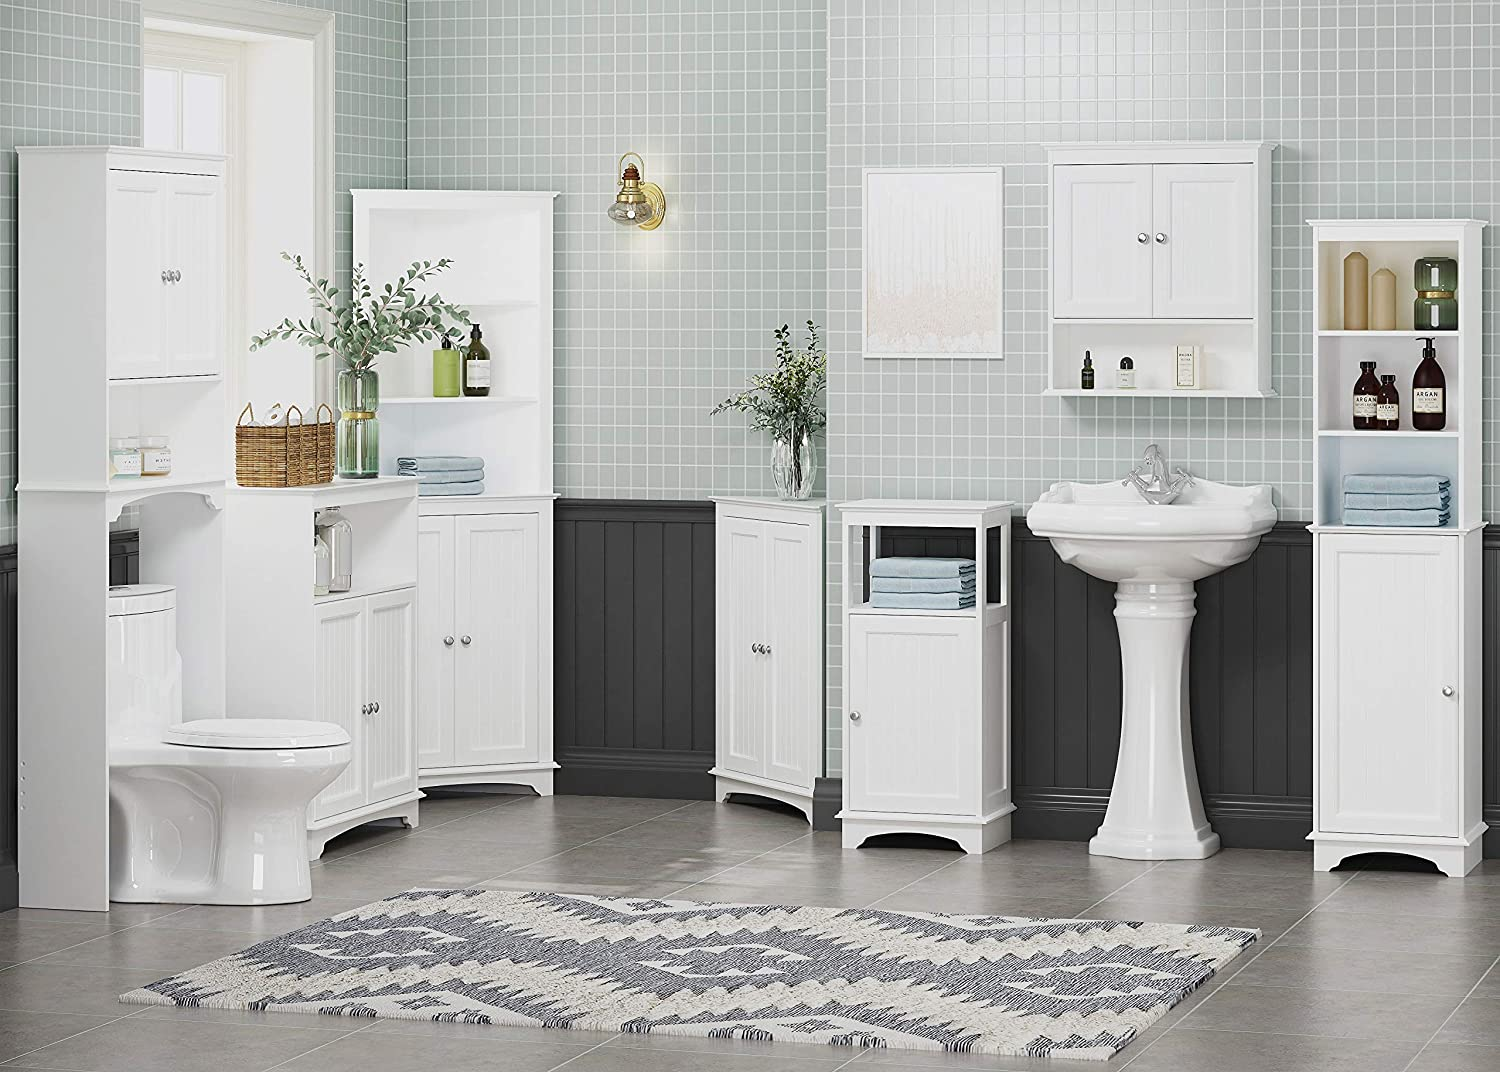 Free Standing Corner Storage Cabinets For Bathroom Kitchen Living Room Or Bedroom Spirich Home Floor Corner Cabinet With Two Doors And Shelves White Accent Furniture Zuiverlucht Storage Cabinets